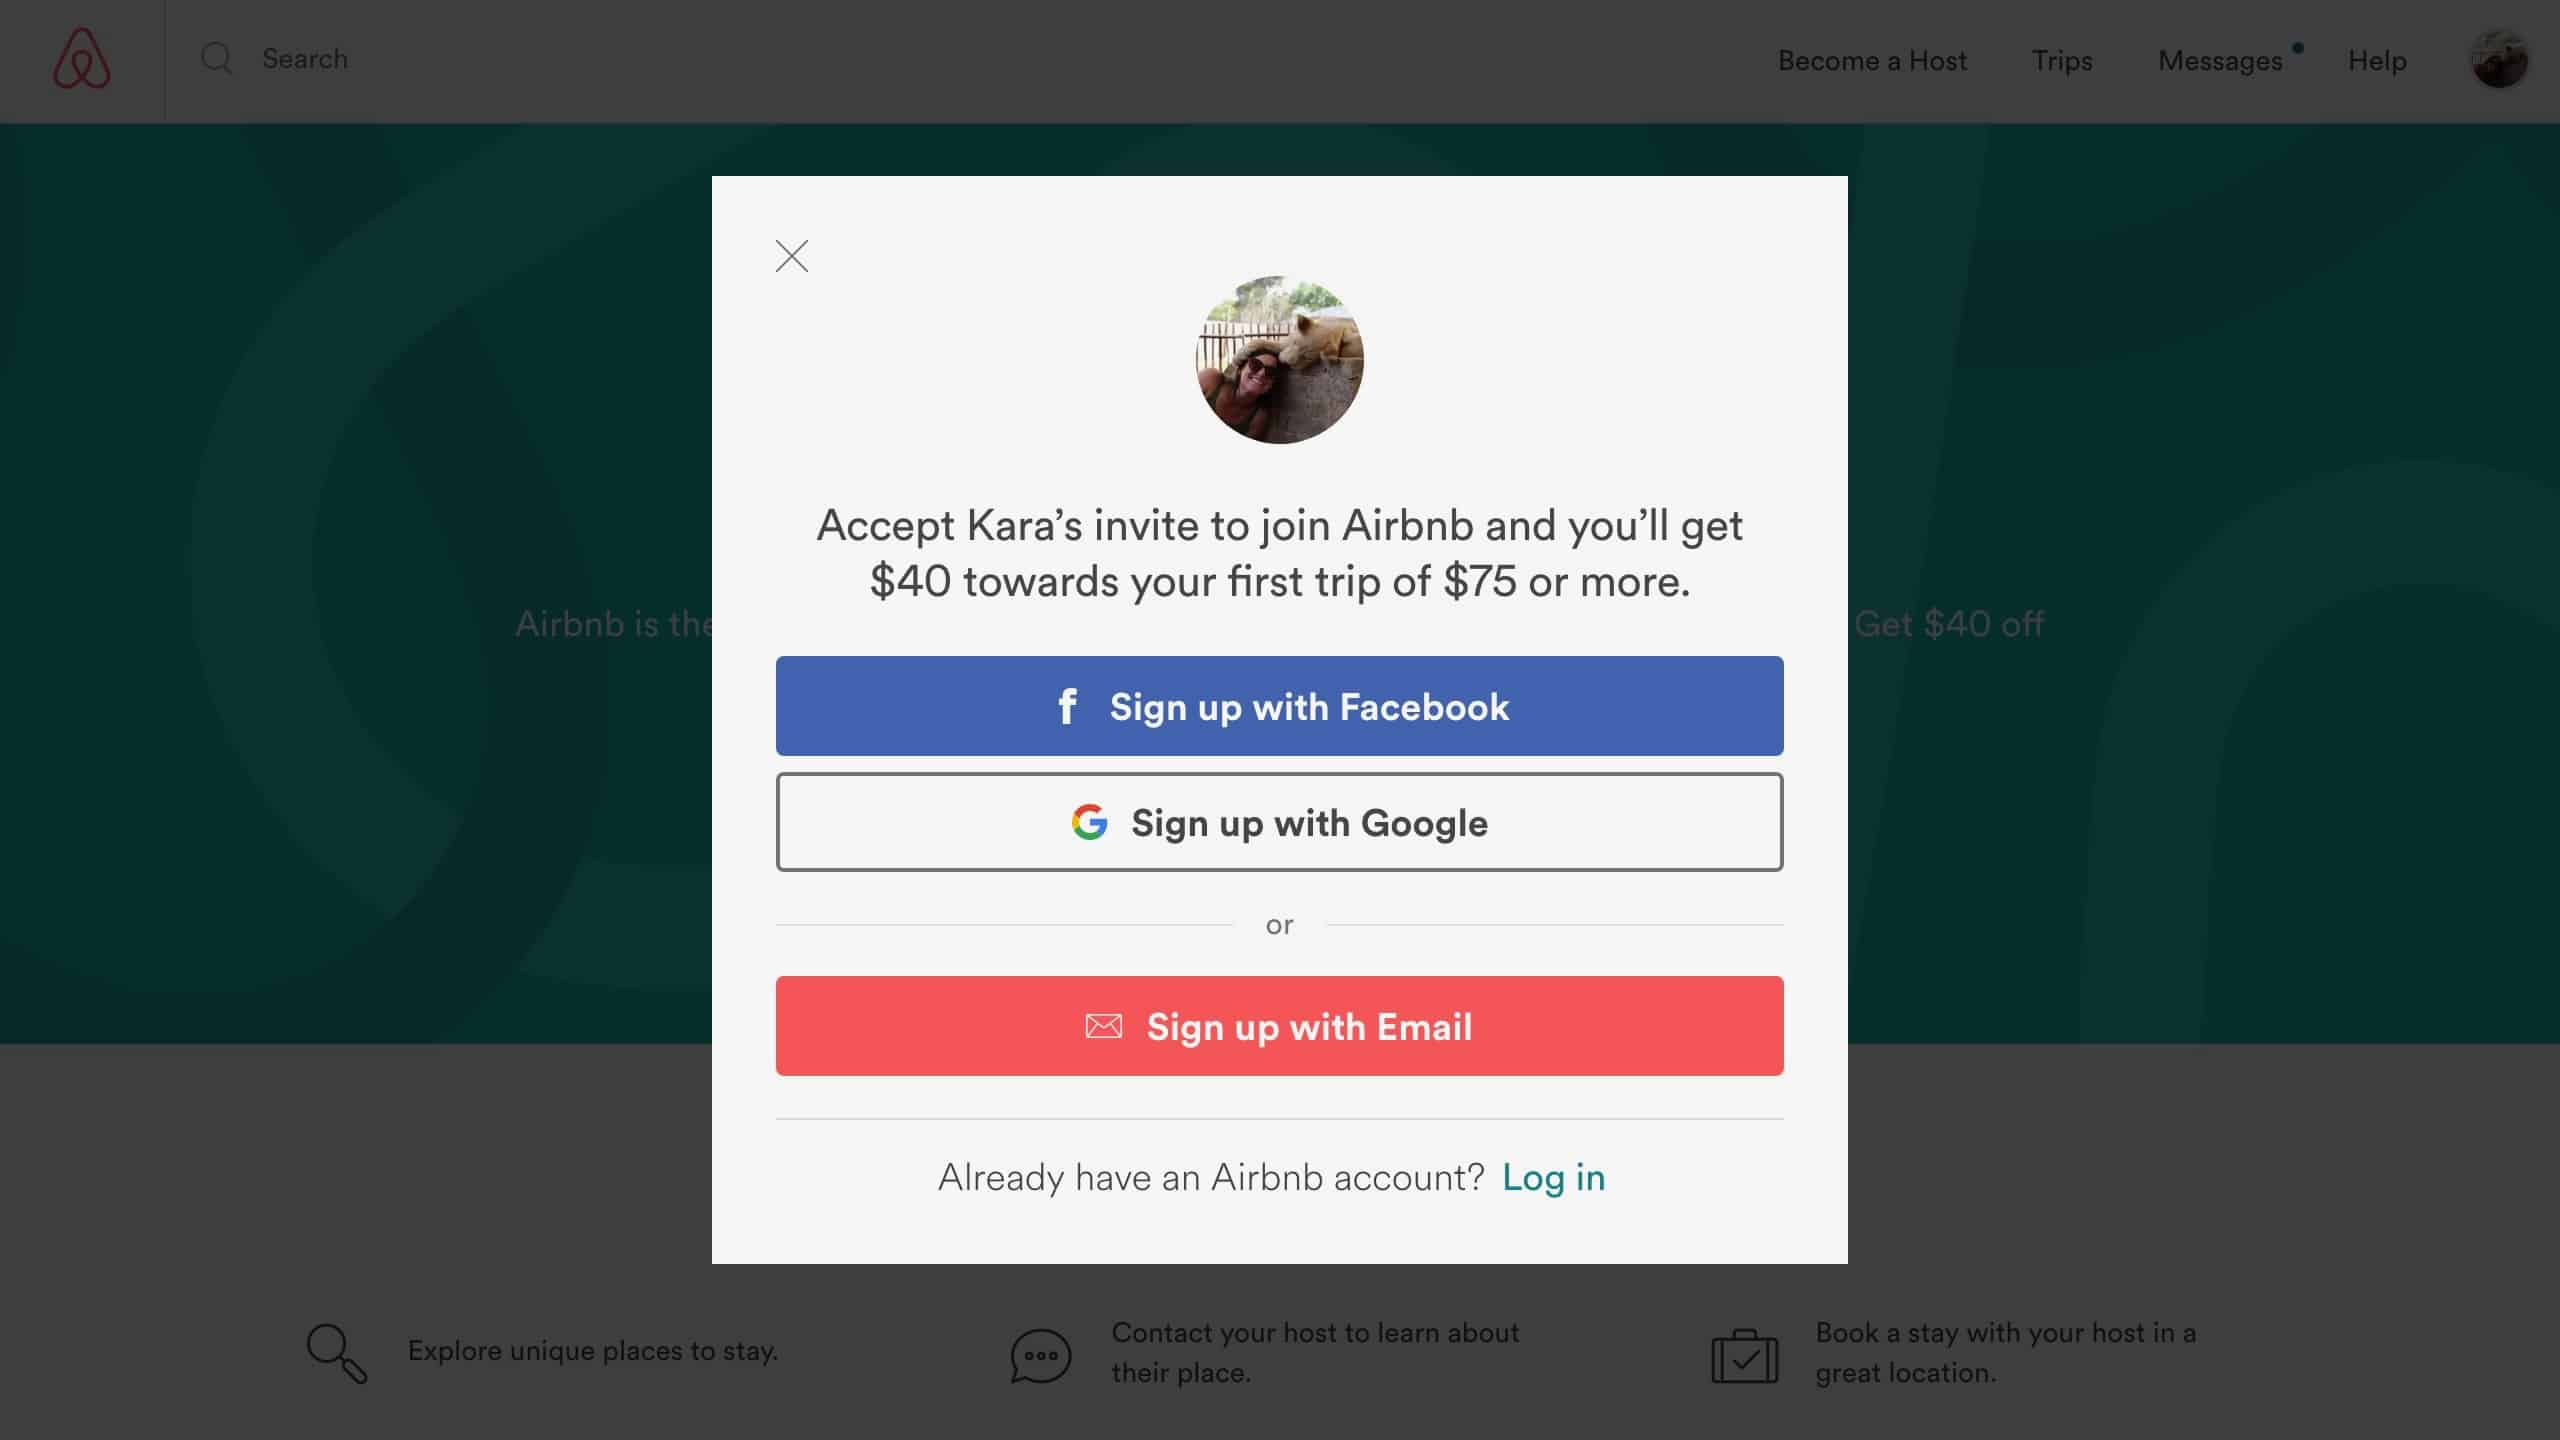 Code Promo Kare Design How To Save On Your First Airbnb Kara And Nate